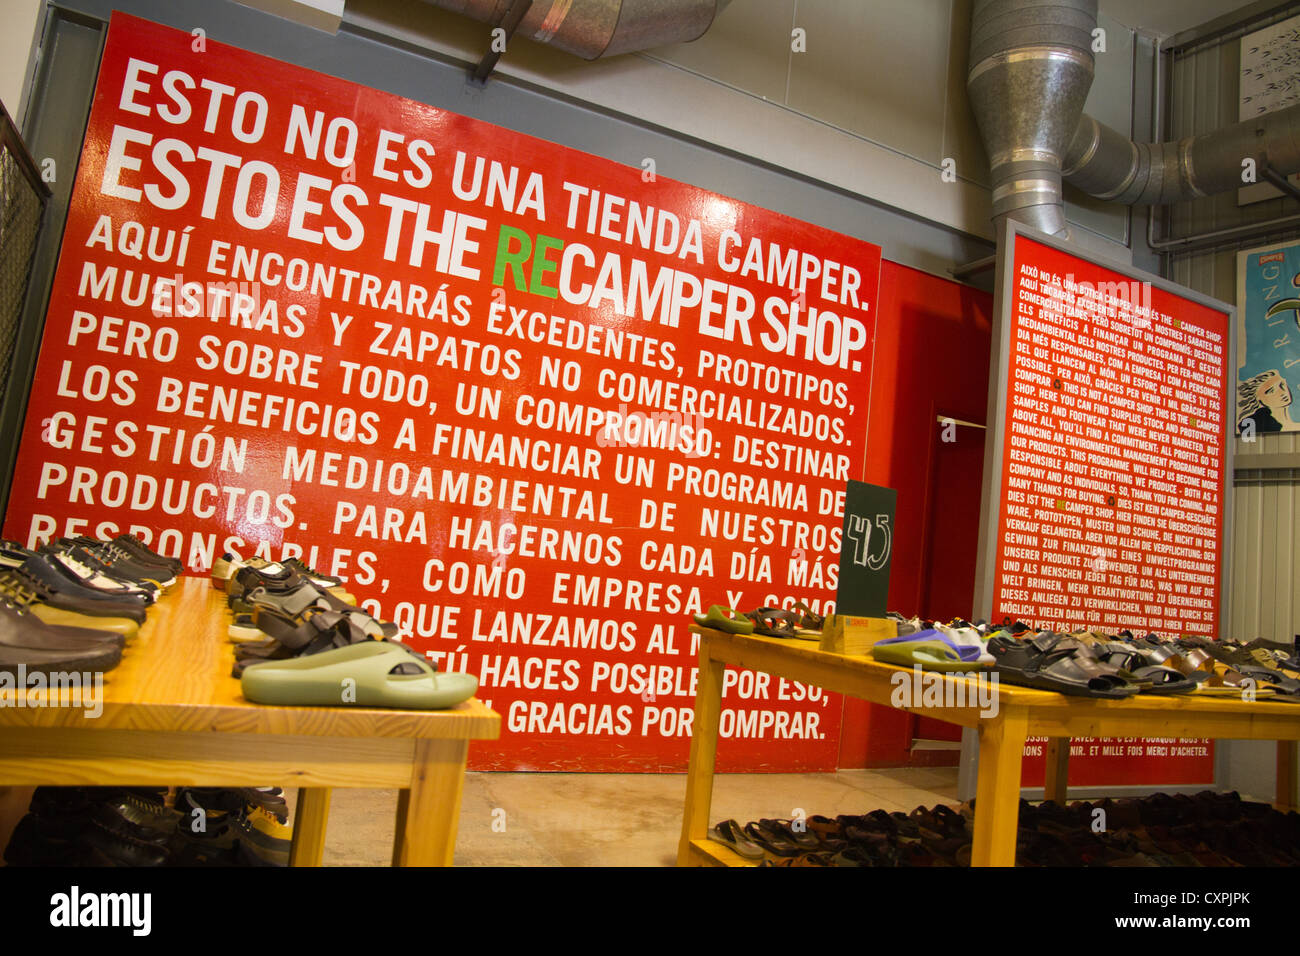 Mallorca Camper Spain Store Shop Stock Shoes Photo OutletInca 0w8PnkO